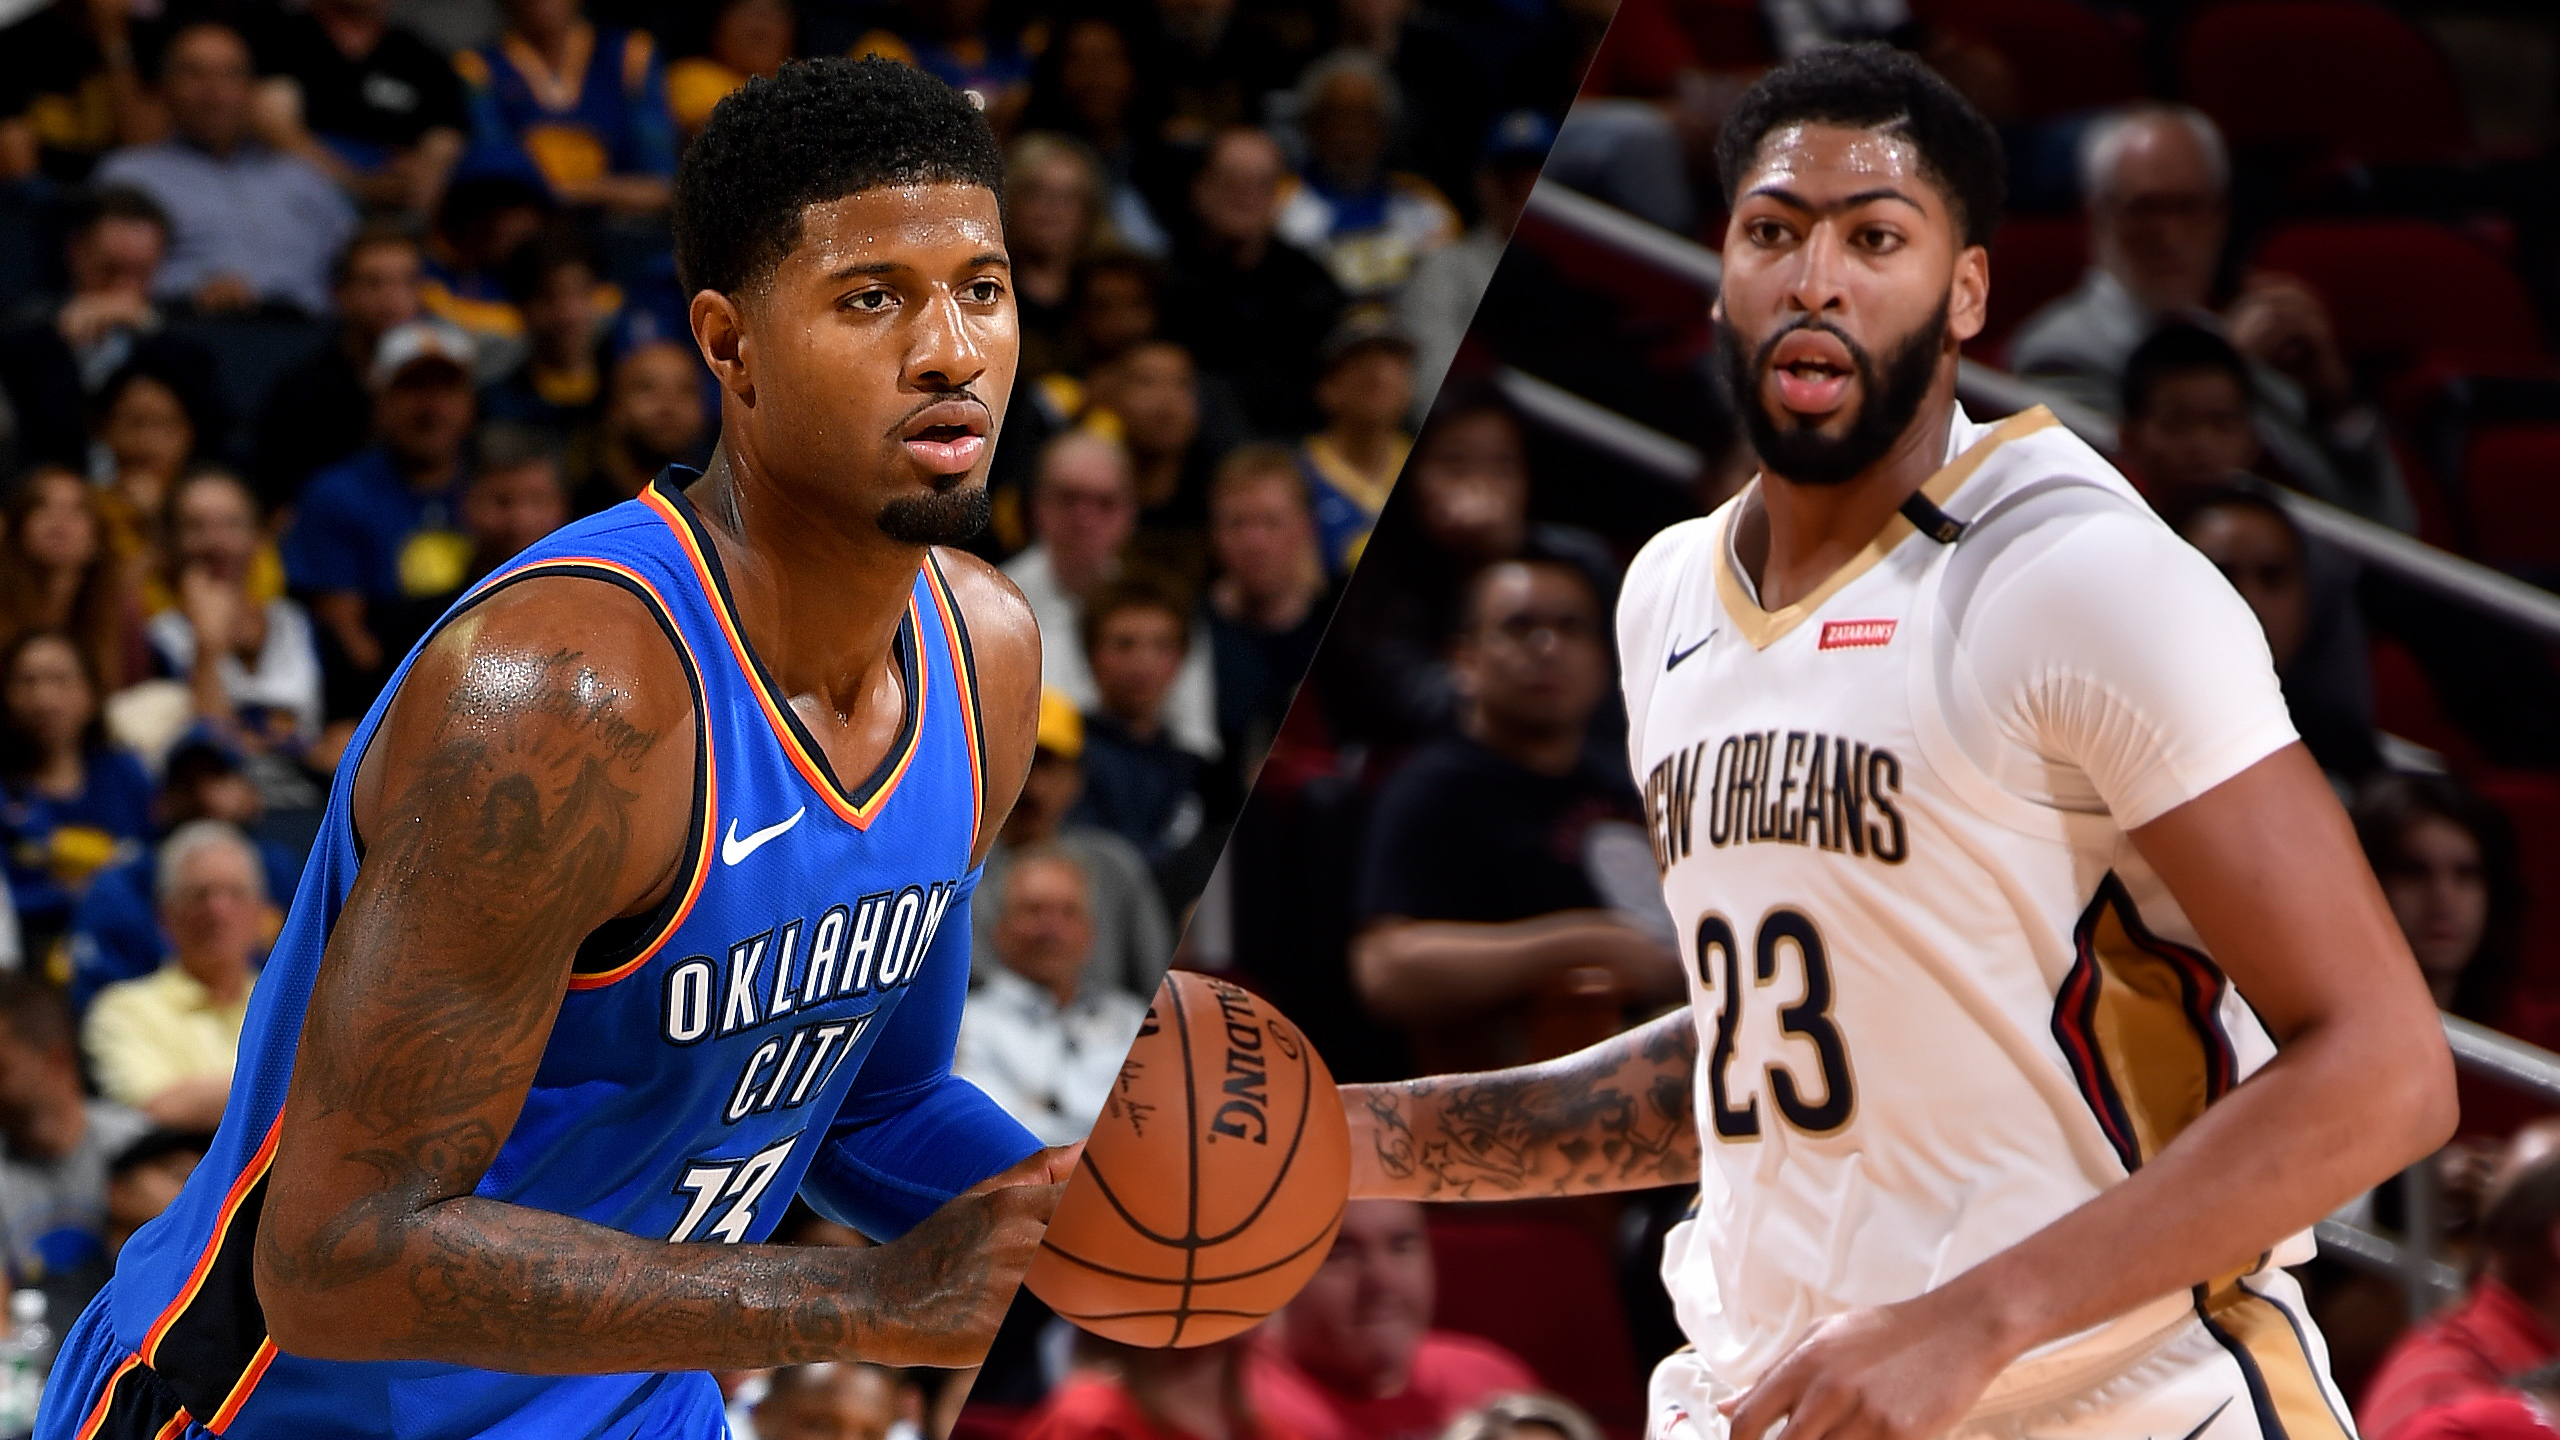 Oklahoma City Thunder vs. New Orleans Pelicans